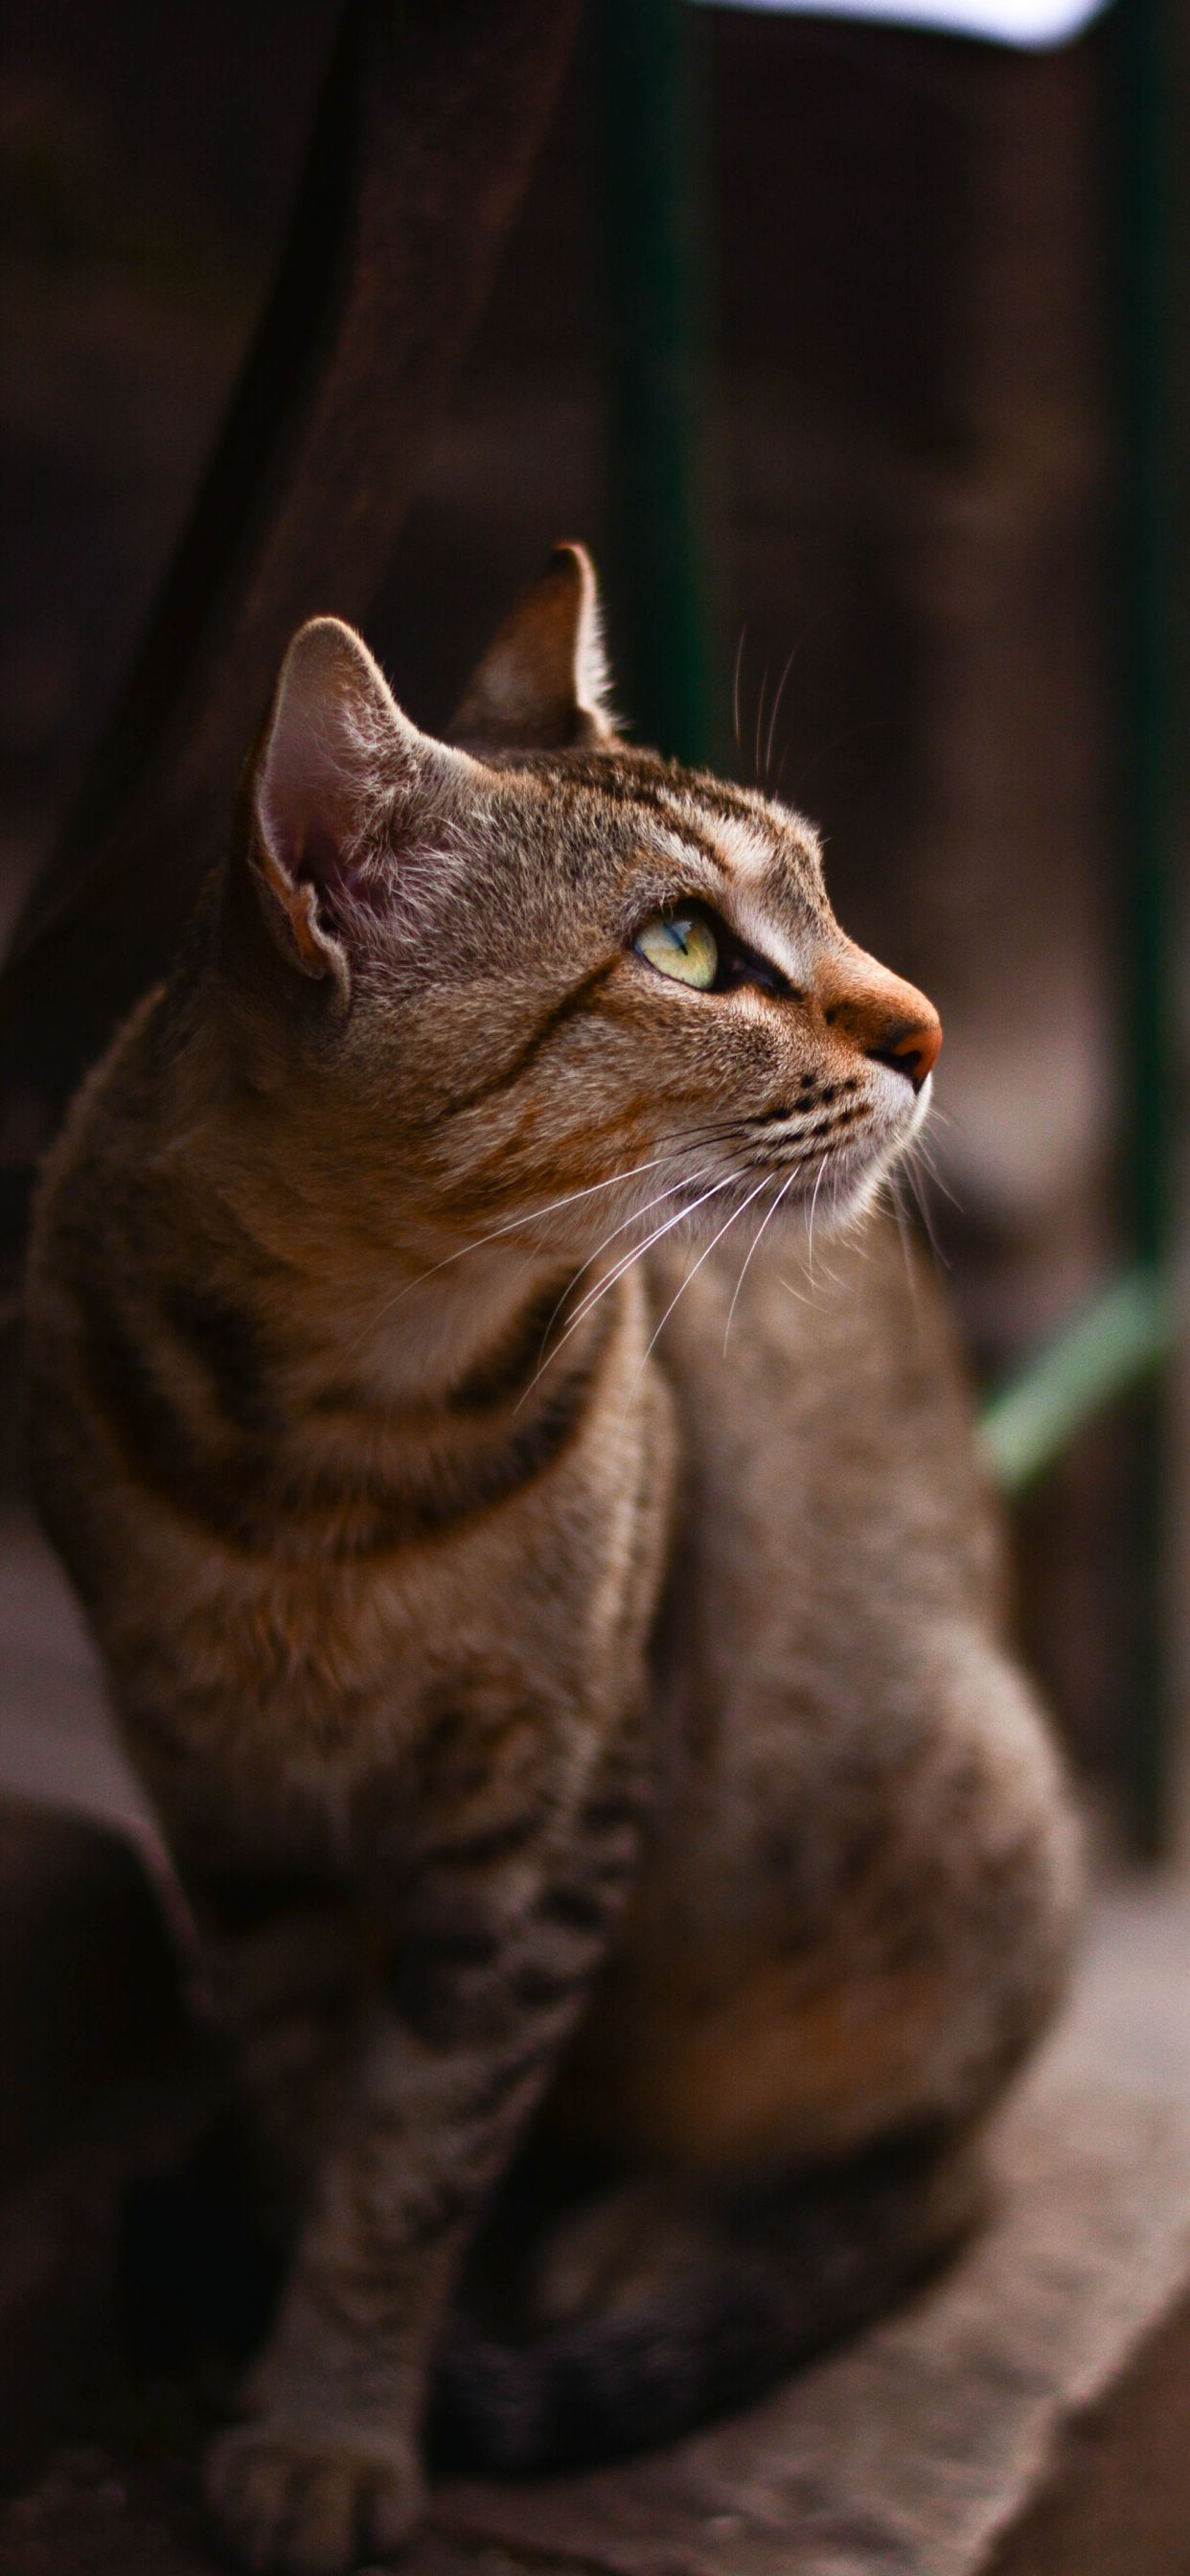 8 Cute Cat iPhone Wallpapers #iphonelockscreen